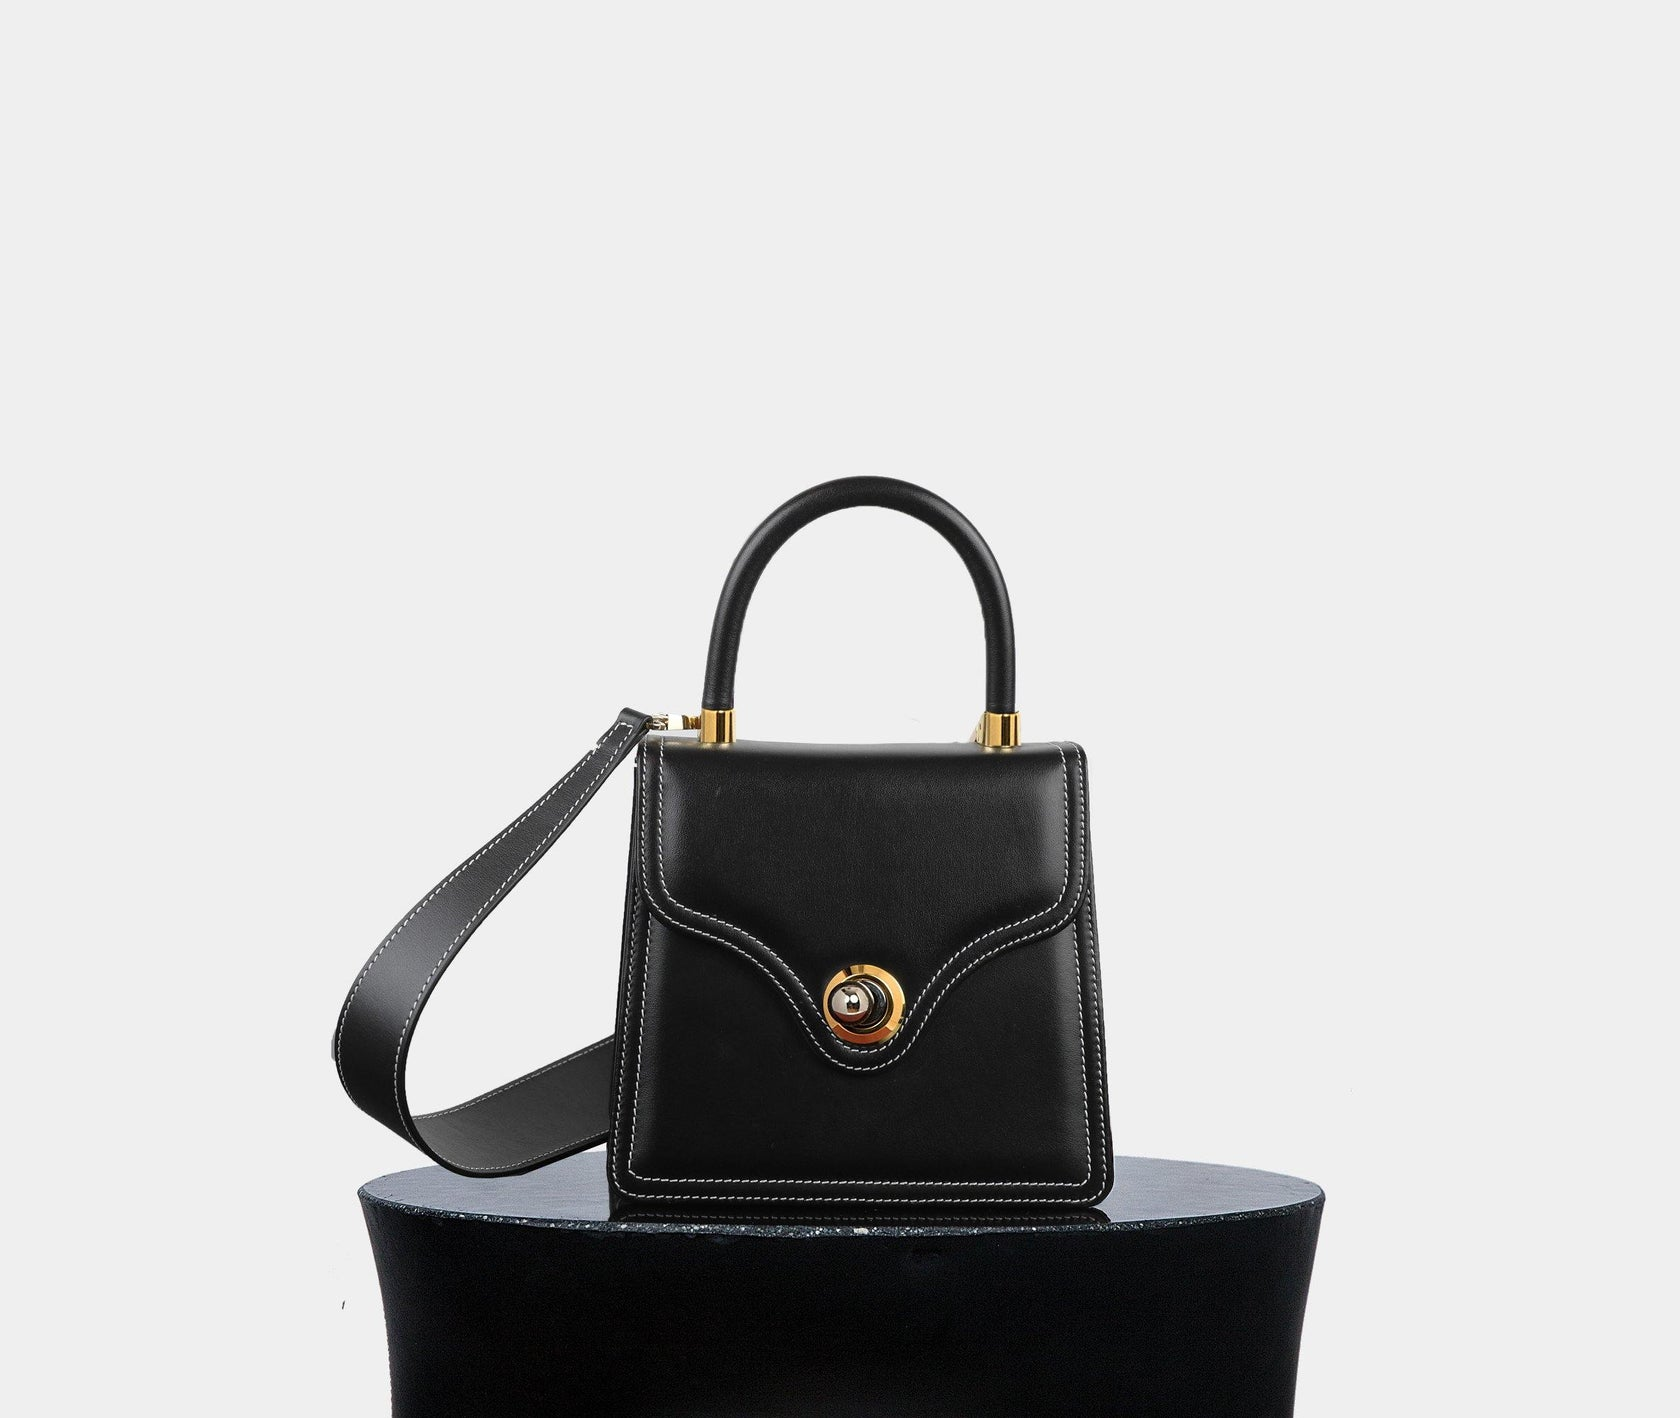 Lady Bag - Black